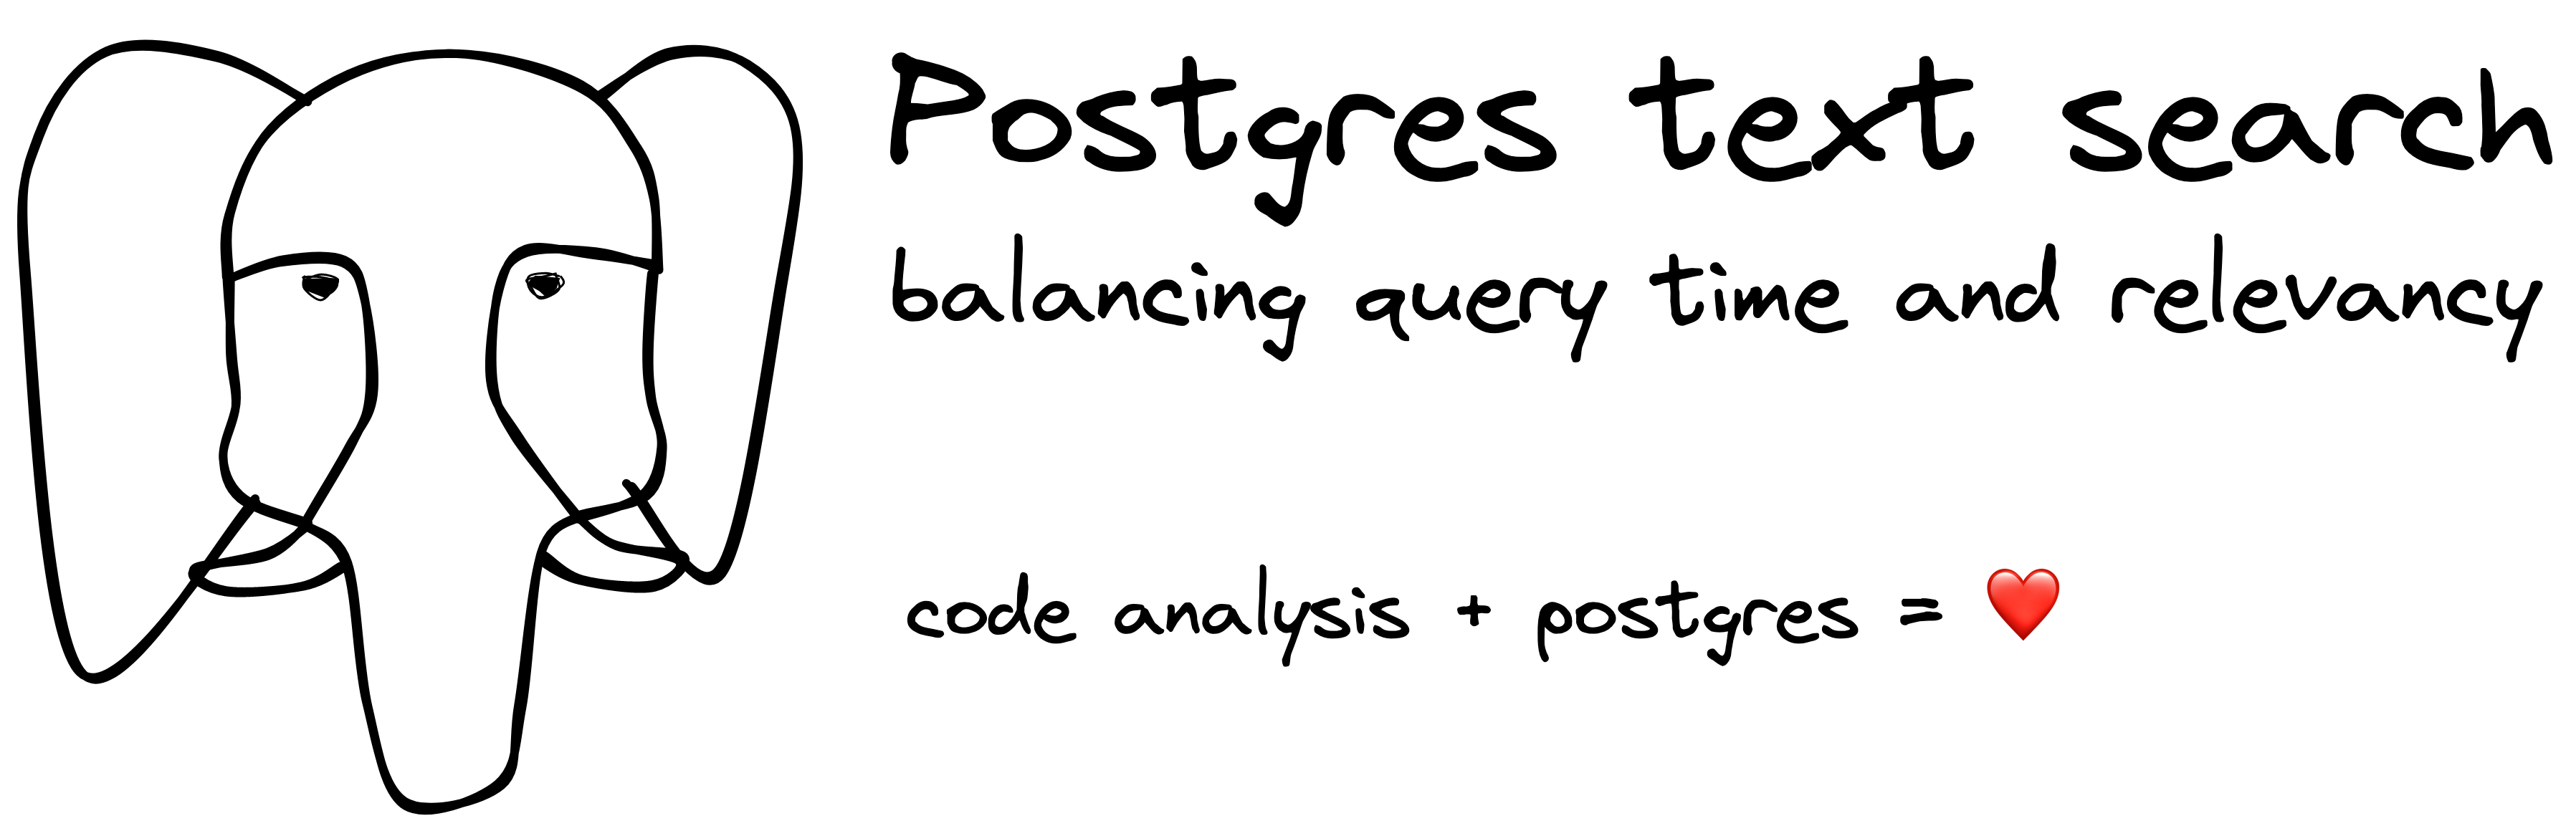 Postgres text search: balancing query time and relevancy